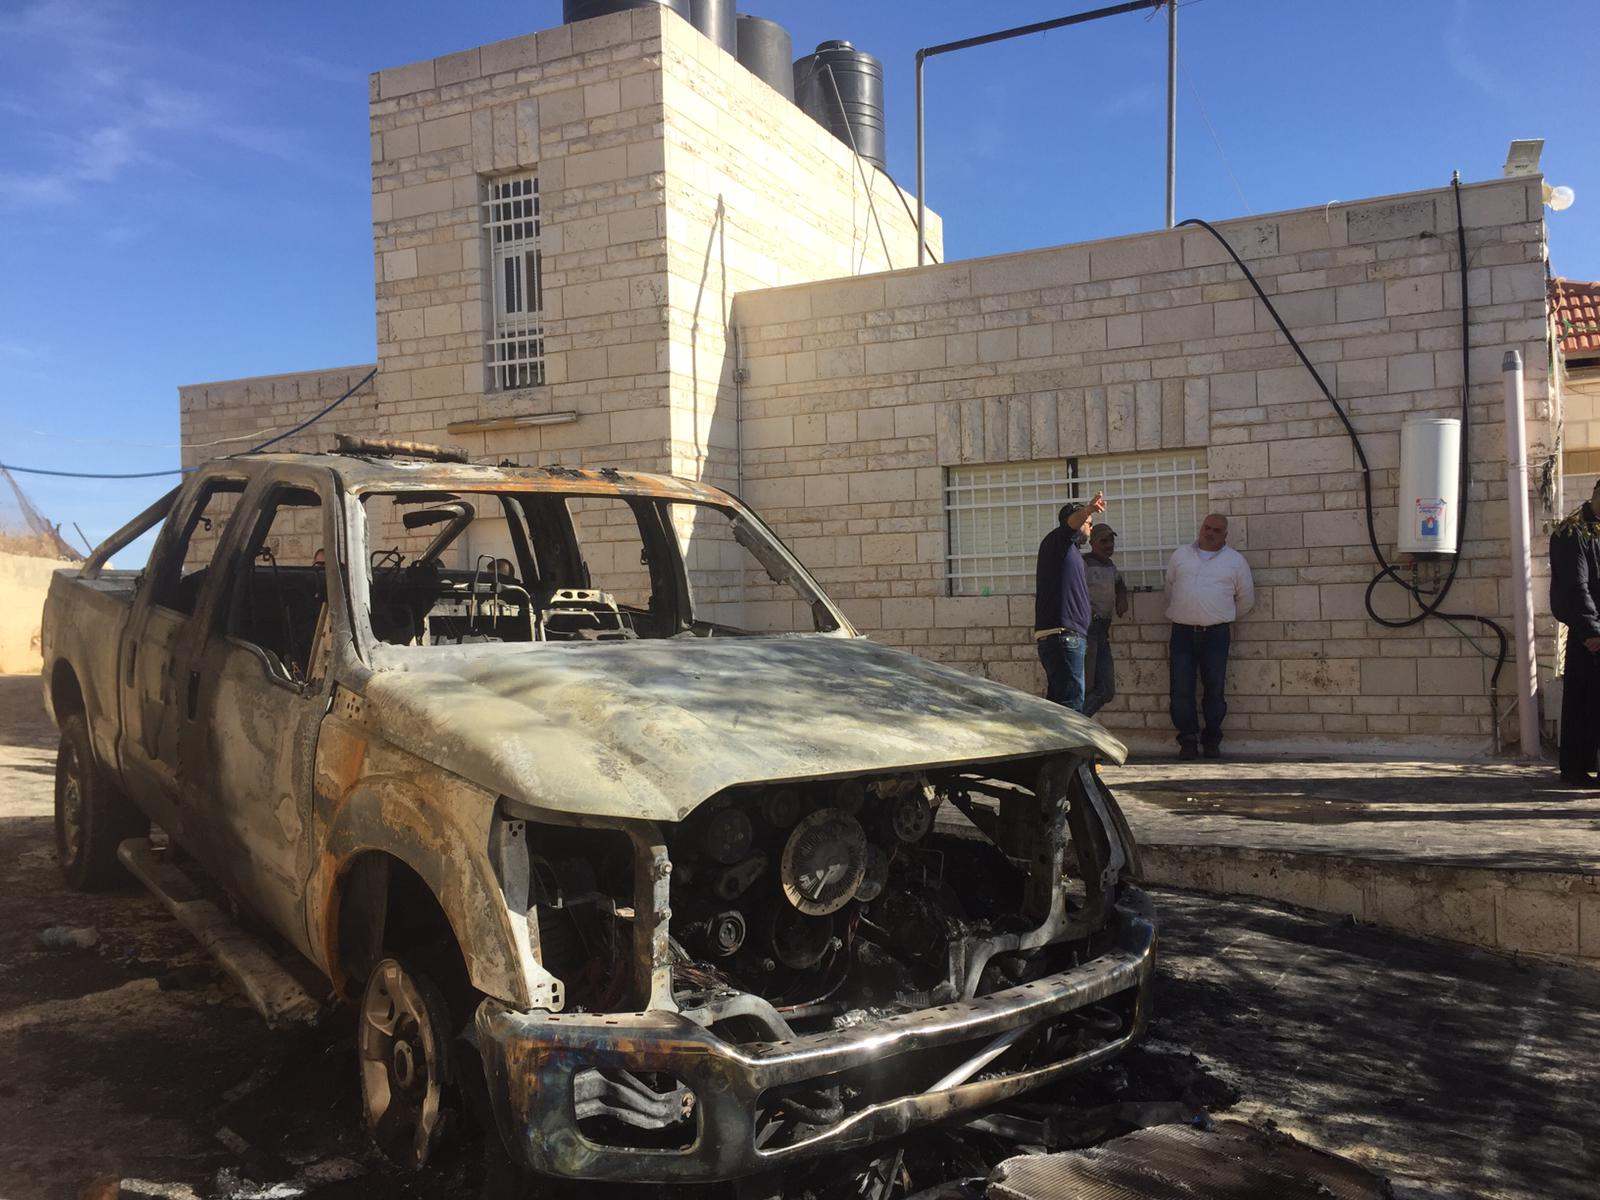 Israeli settlers target Christian Palestinians in West Bank town